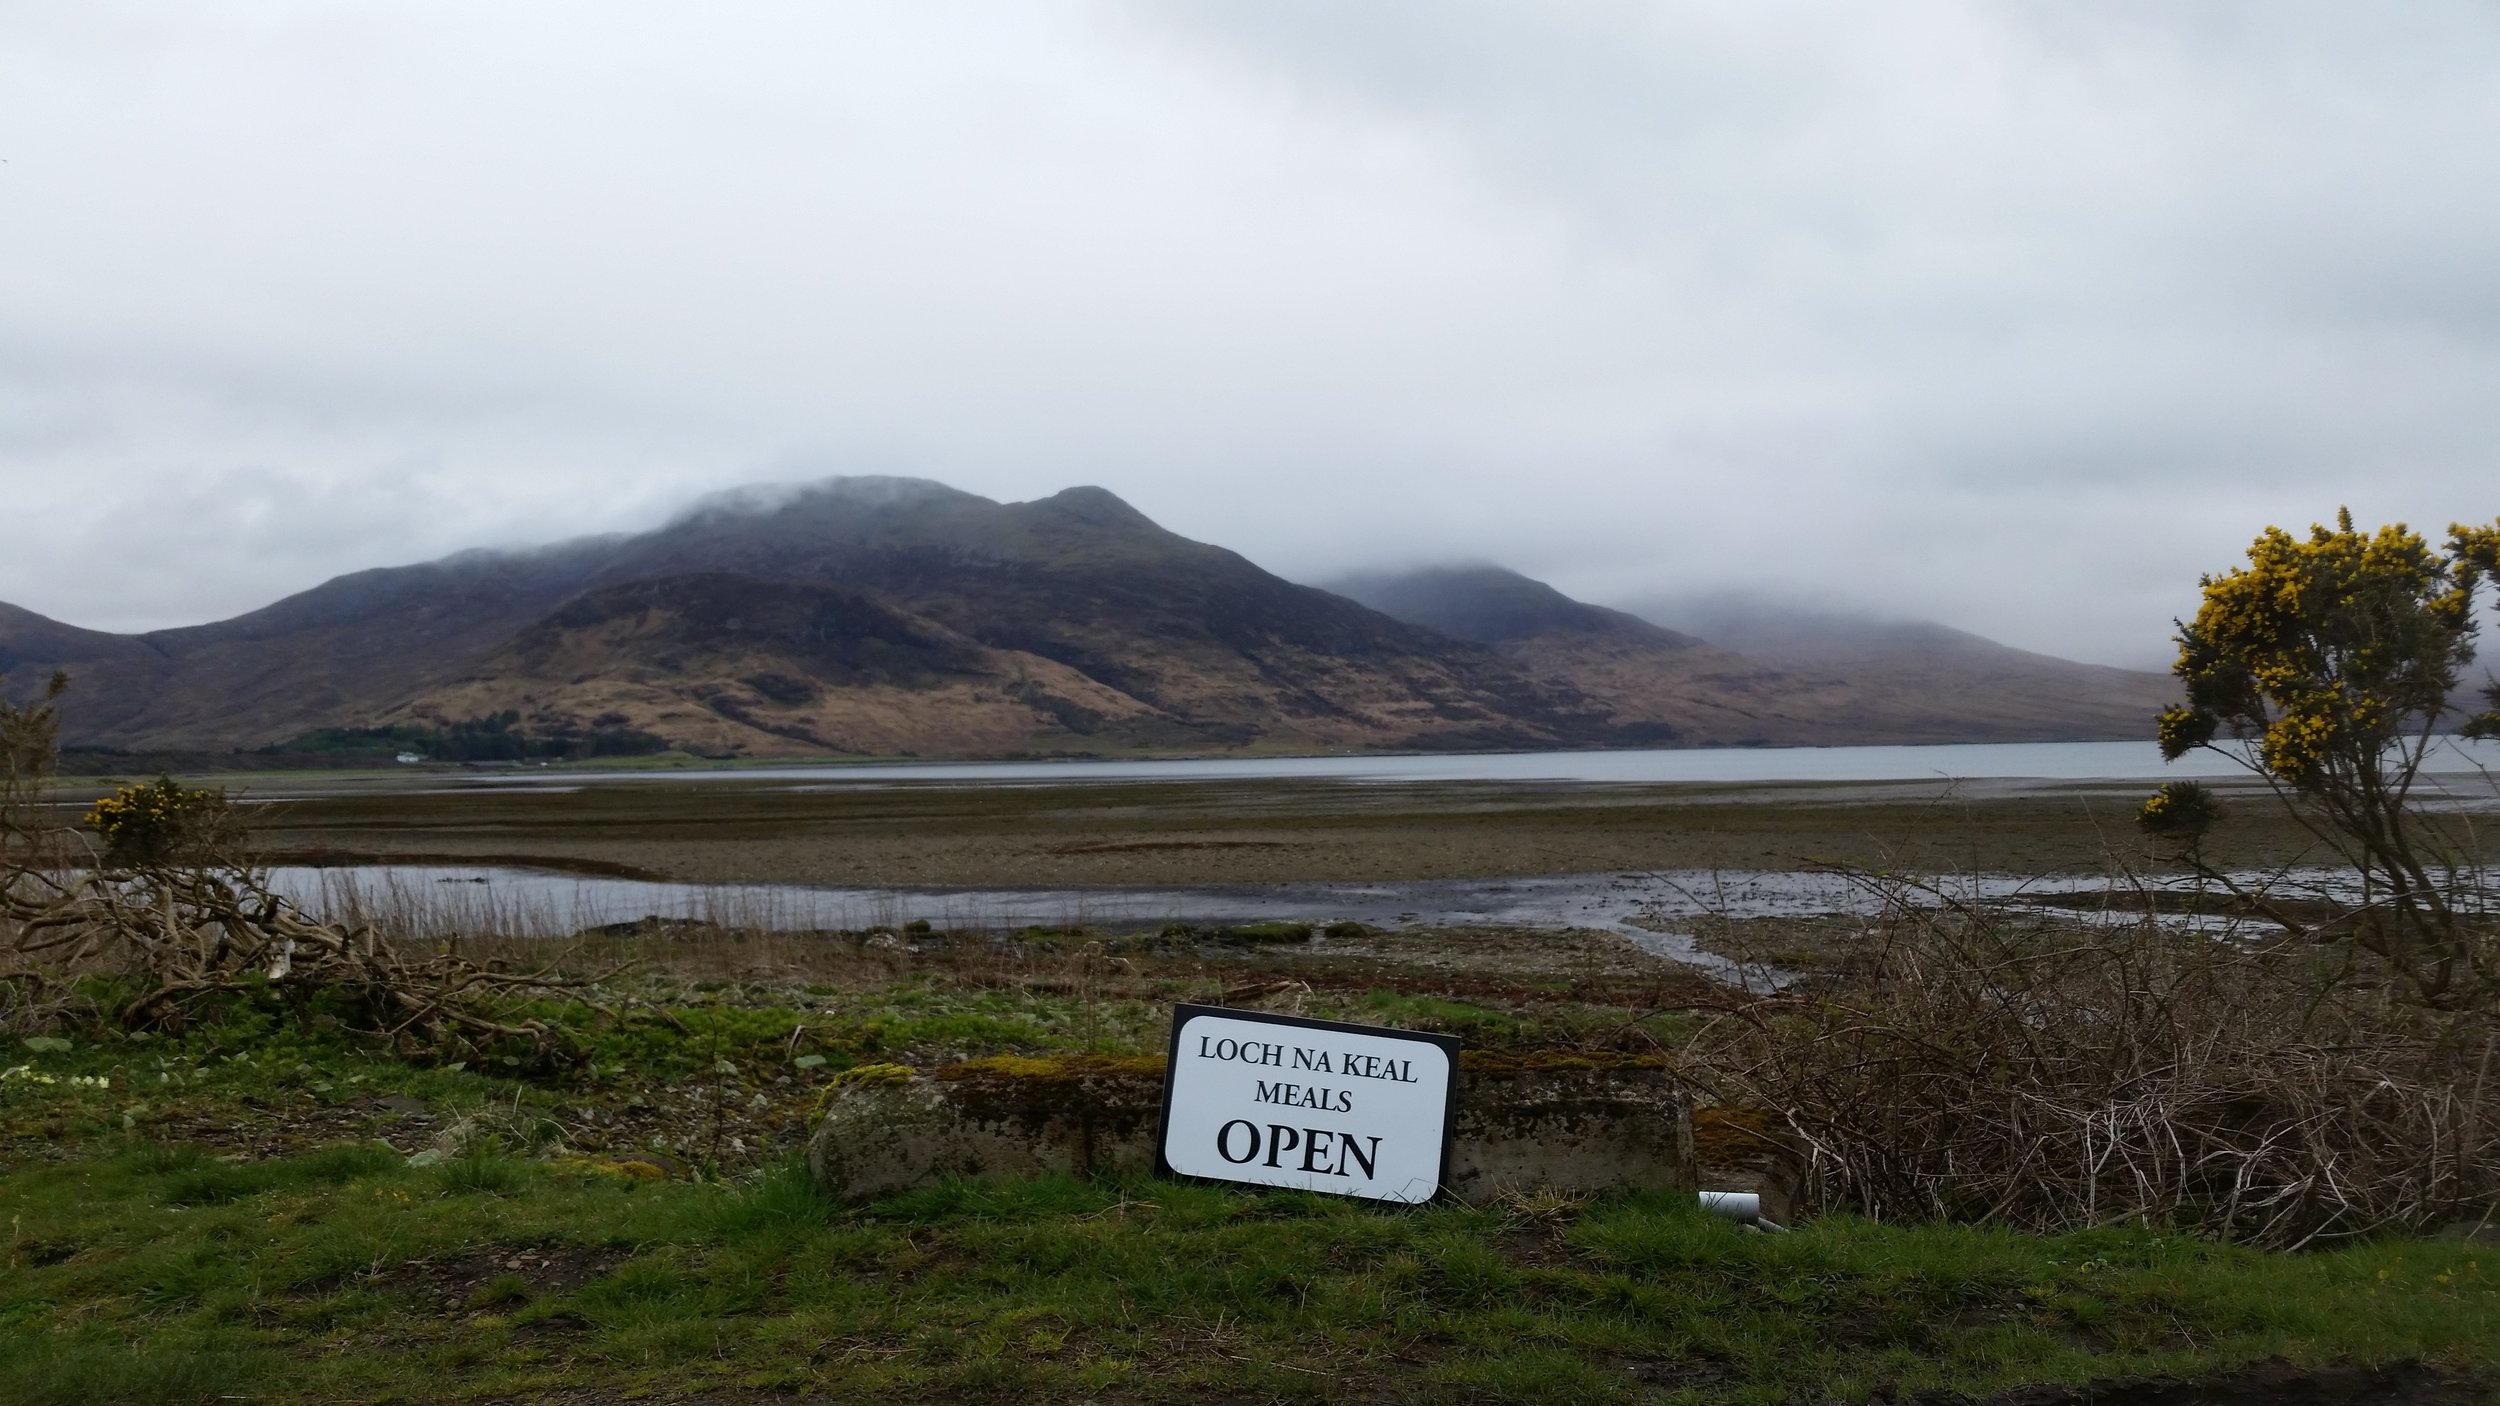 The spectacular view from Loch Na Keal Meals.